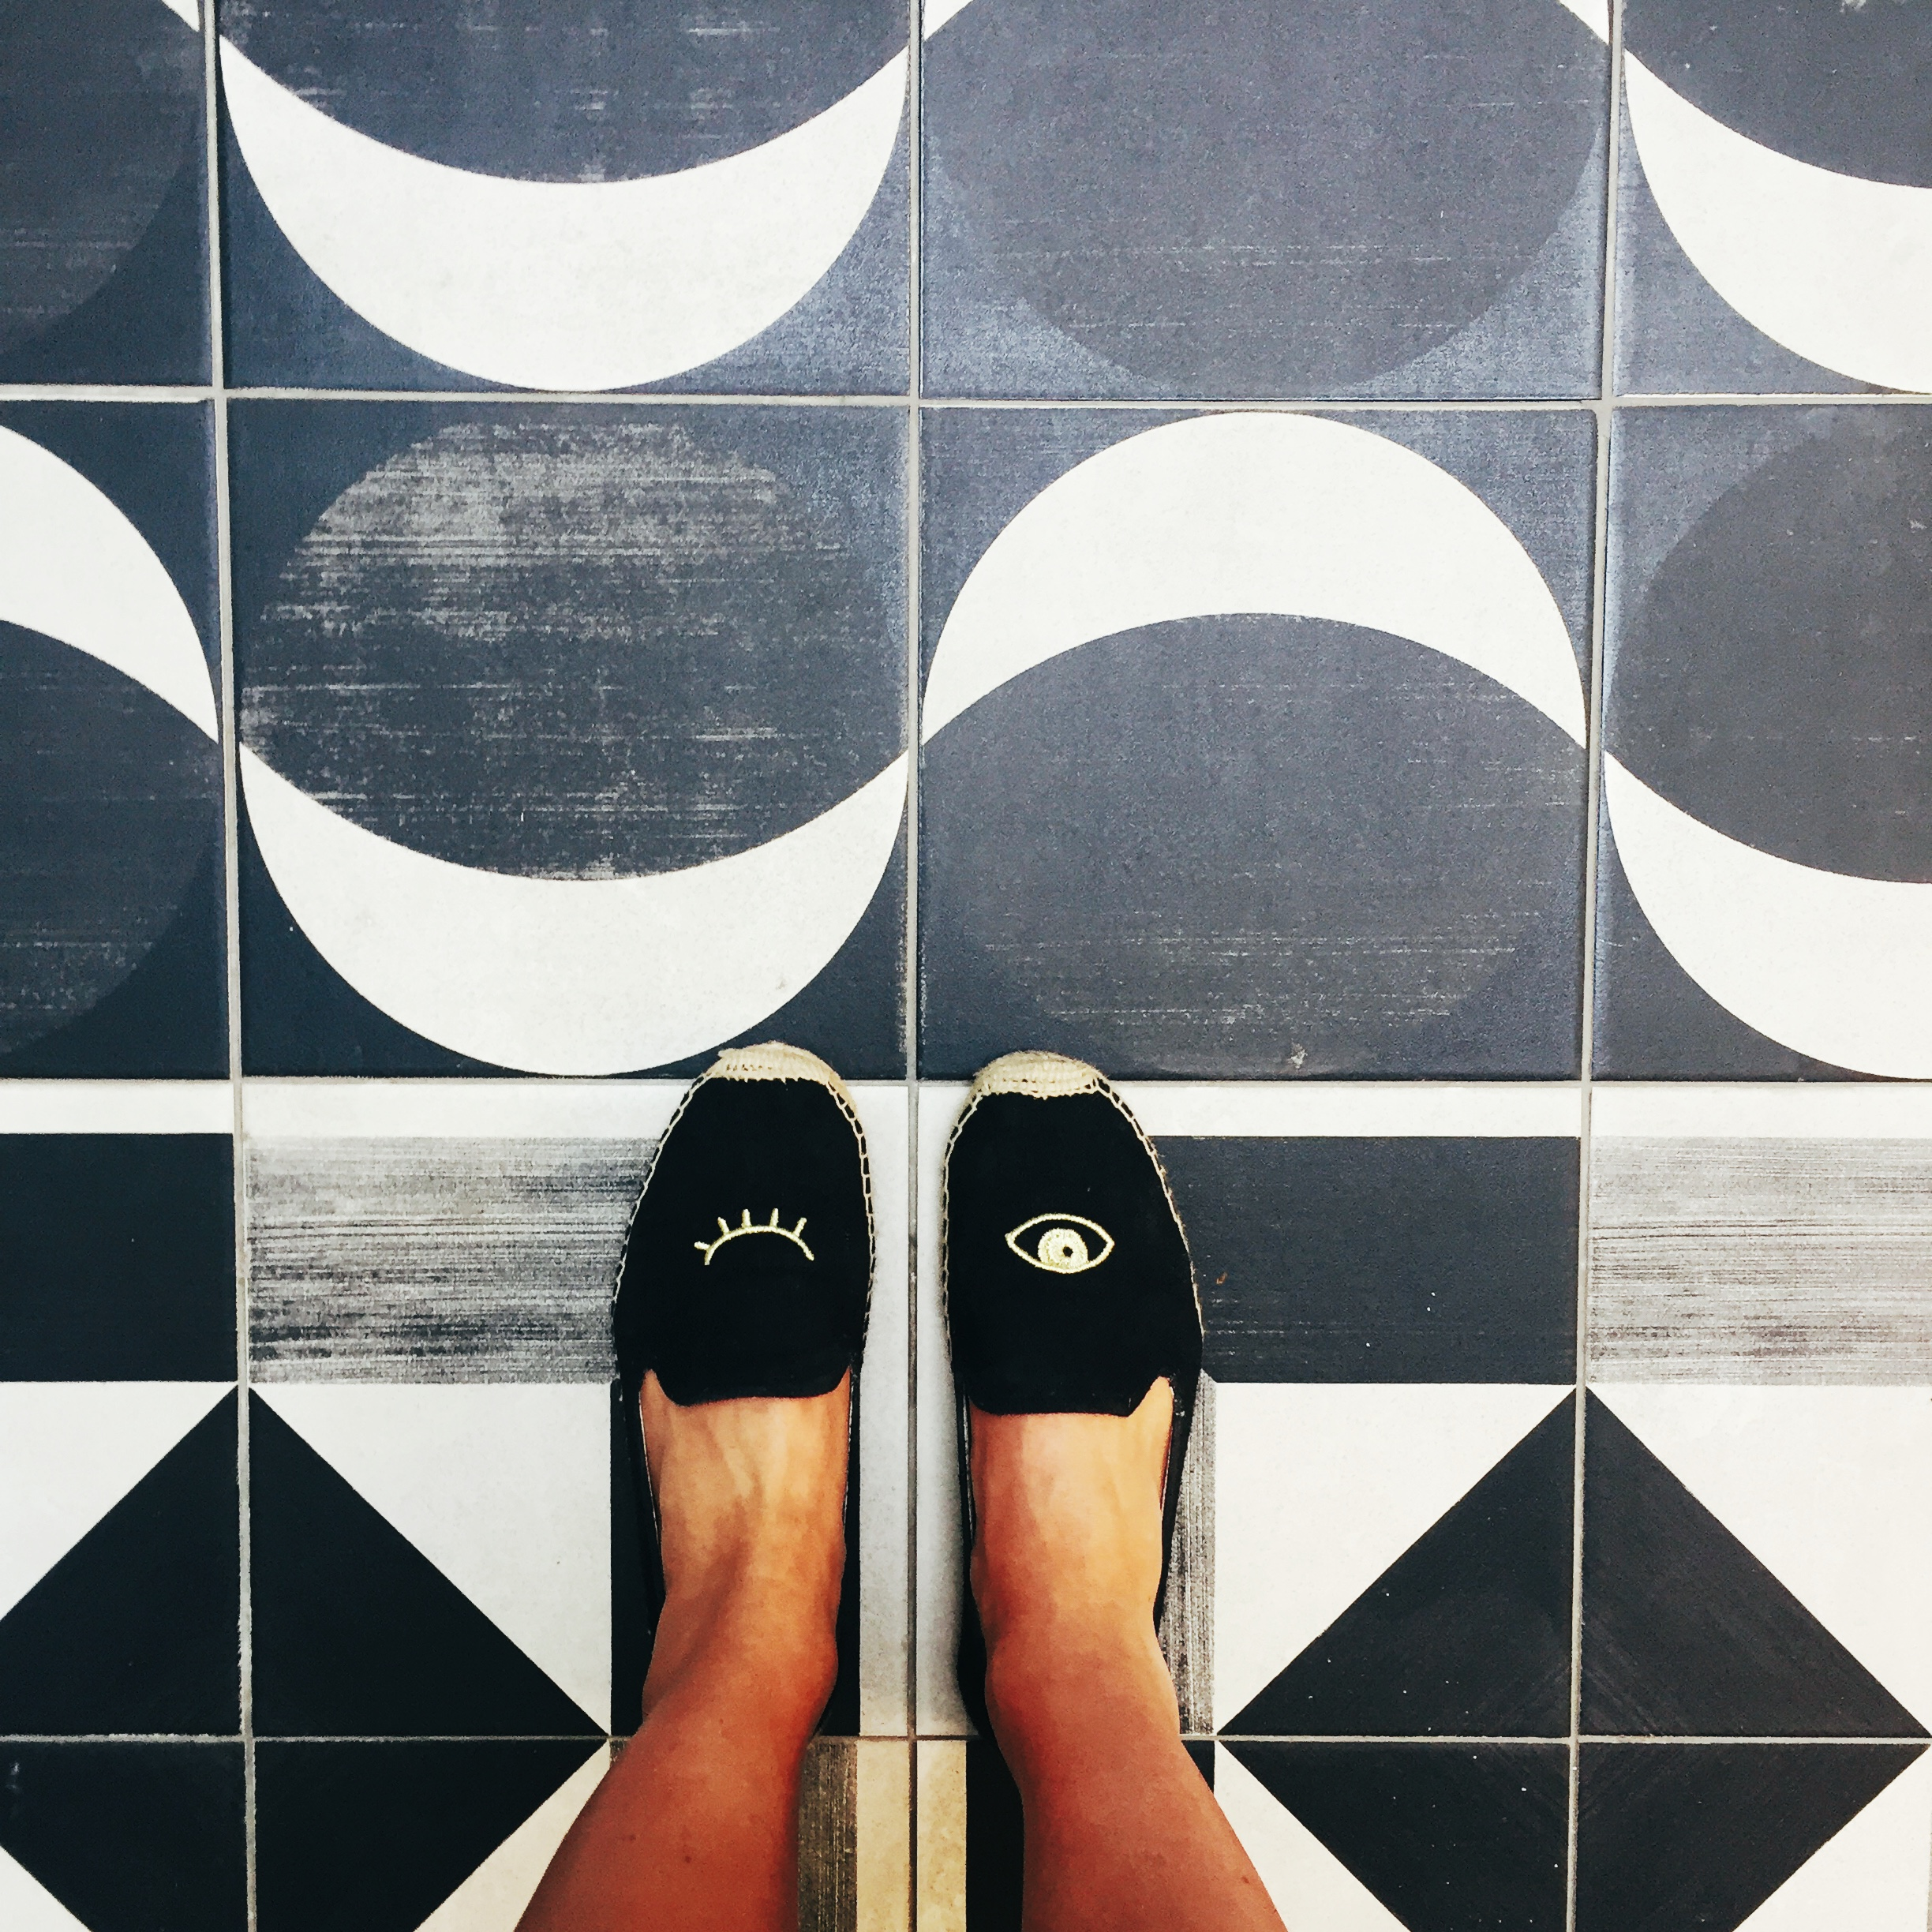 Typical blogger #FWIS / #Ihavethisthingwithfloors